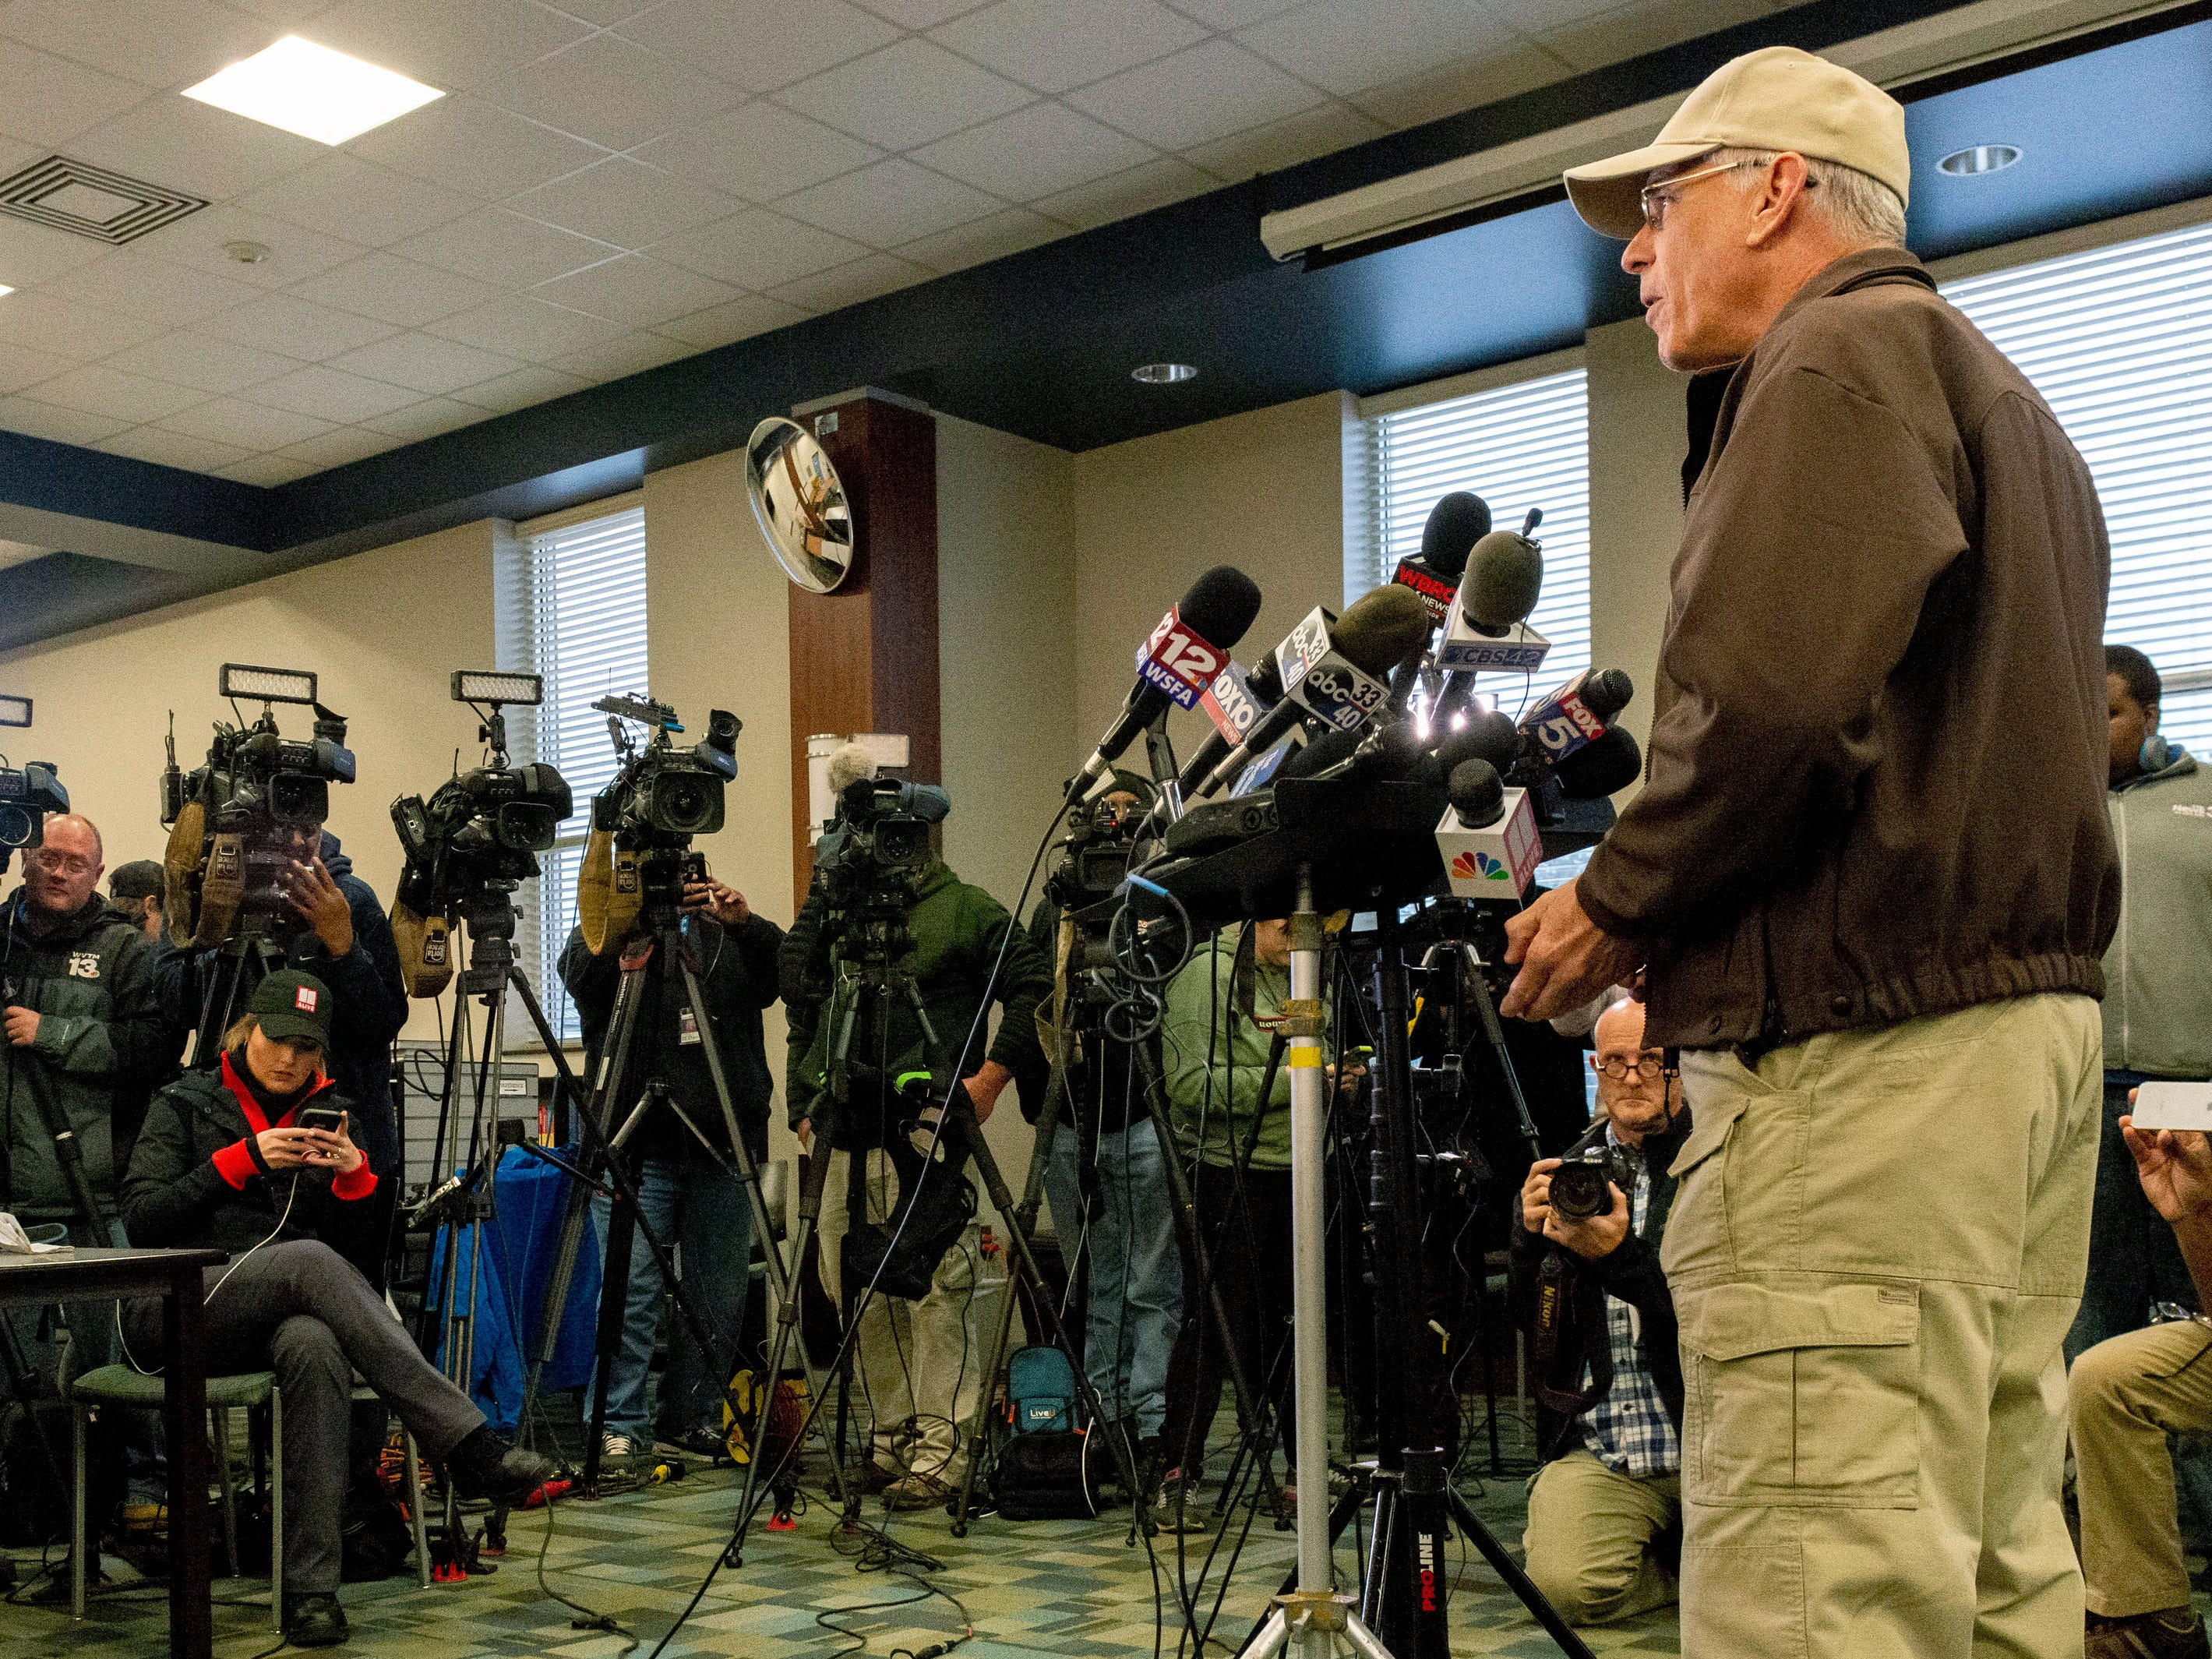 Lee County Sheriff Jay Jones, right, updates the media on search and rescue efforts following Sunday's deadly tornado during a press conference at Beauregard High School, Monday, March 4, 2019, in Beauregard, Ala. (AP Photo/Vasha Hunt) ORG XMIT: ALVH105